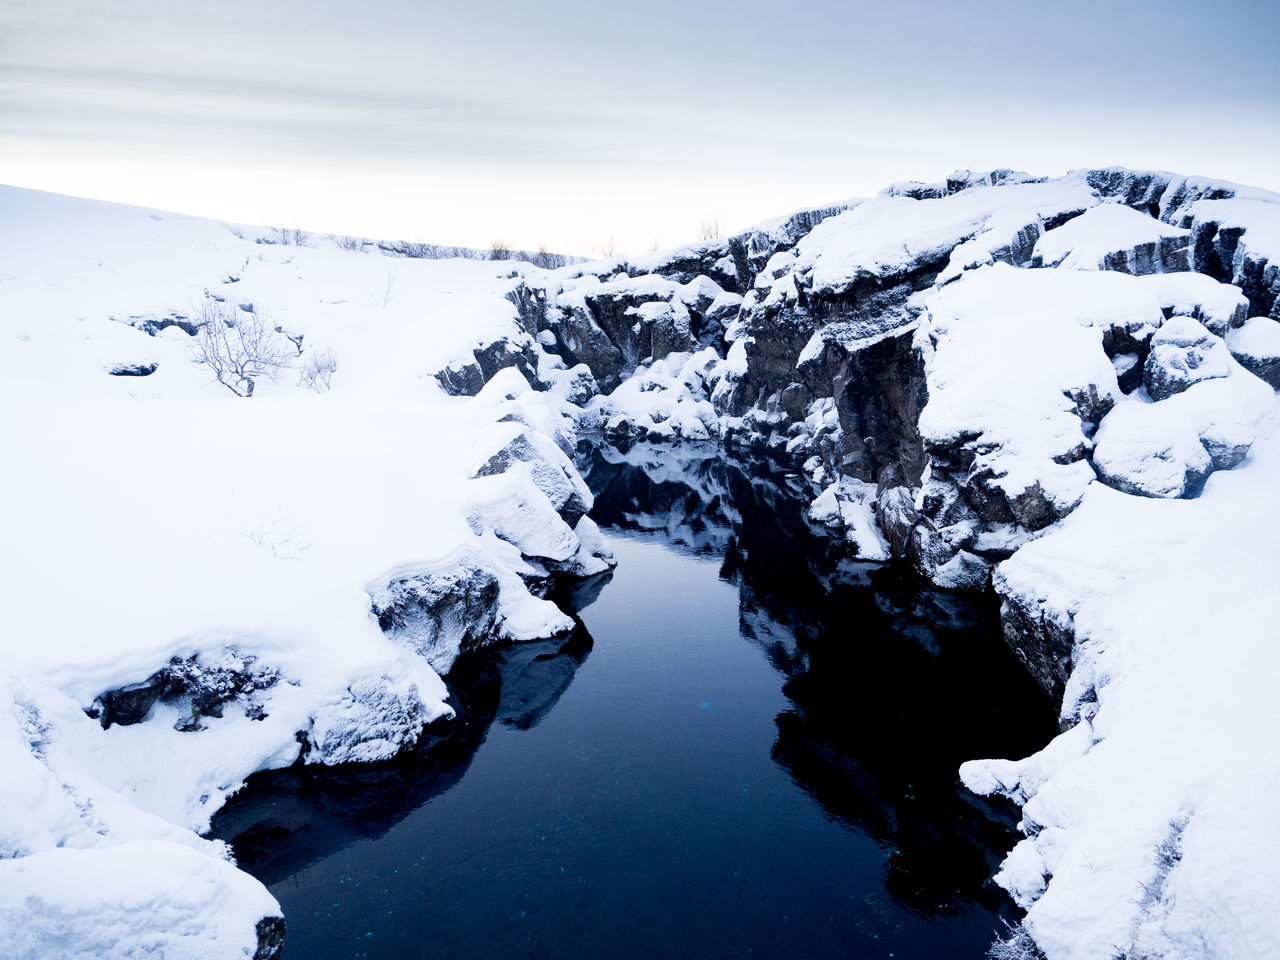 Beauty In Nature Cold Temperature Covering High Angle View Iceland Idyllic Landscape Majestic Mountain Mountain Range Nature Non-urban Scene Remote Rock - Object Scenics Season  Sky Snow Snowcapped Mountain Solitude Tranquil Scene Tranquility Water Weather Winter